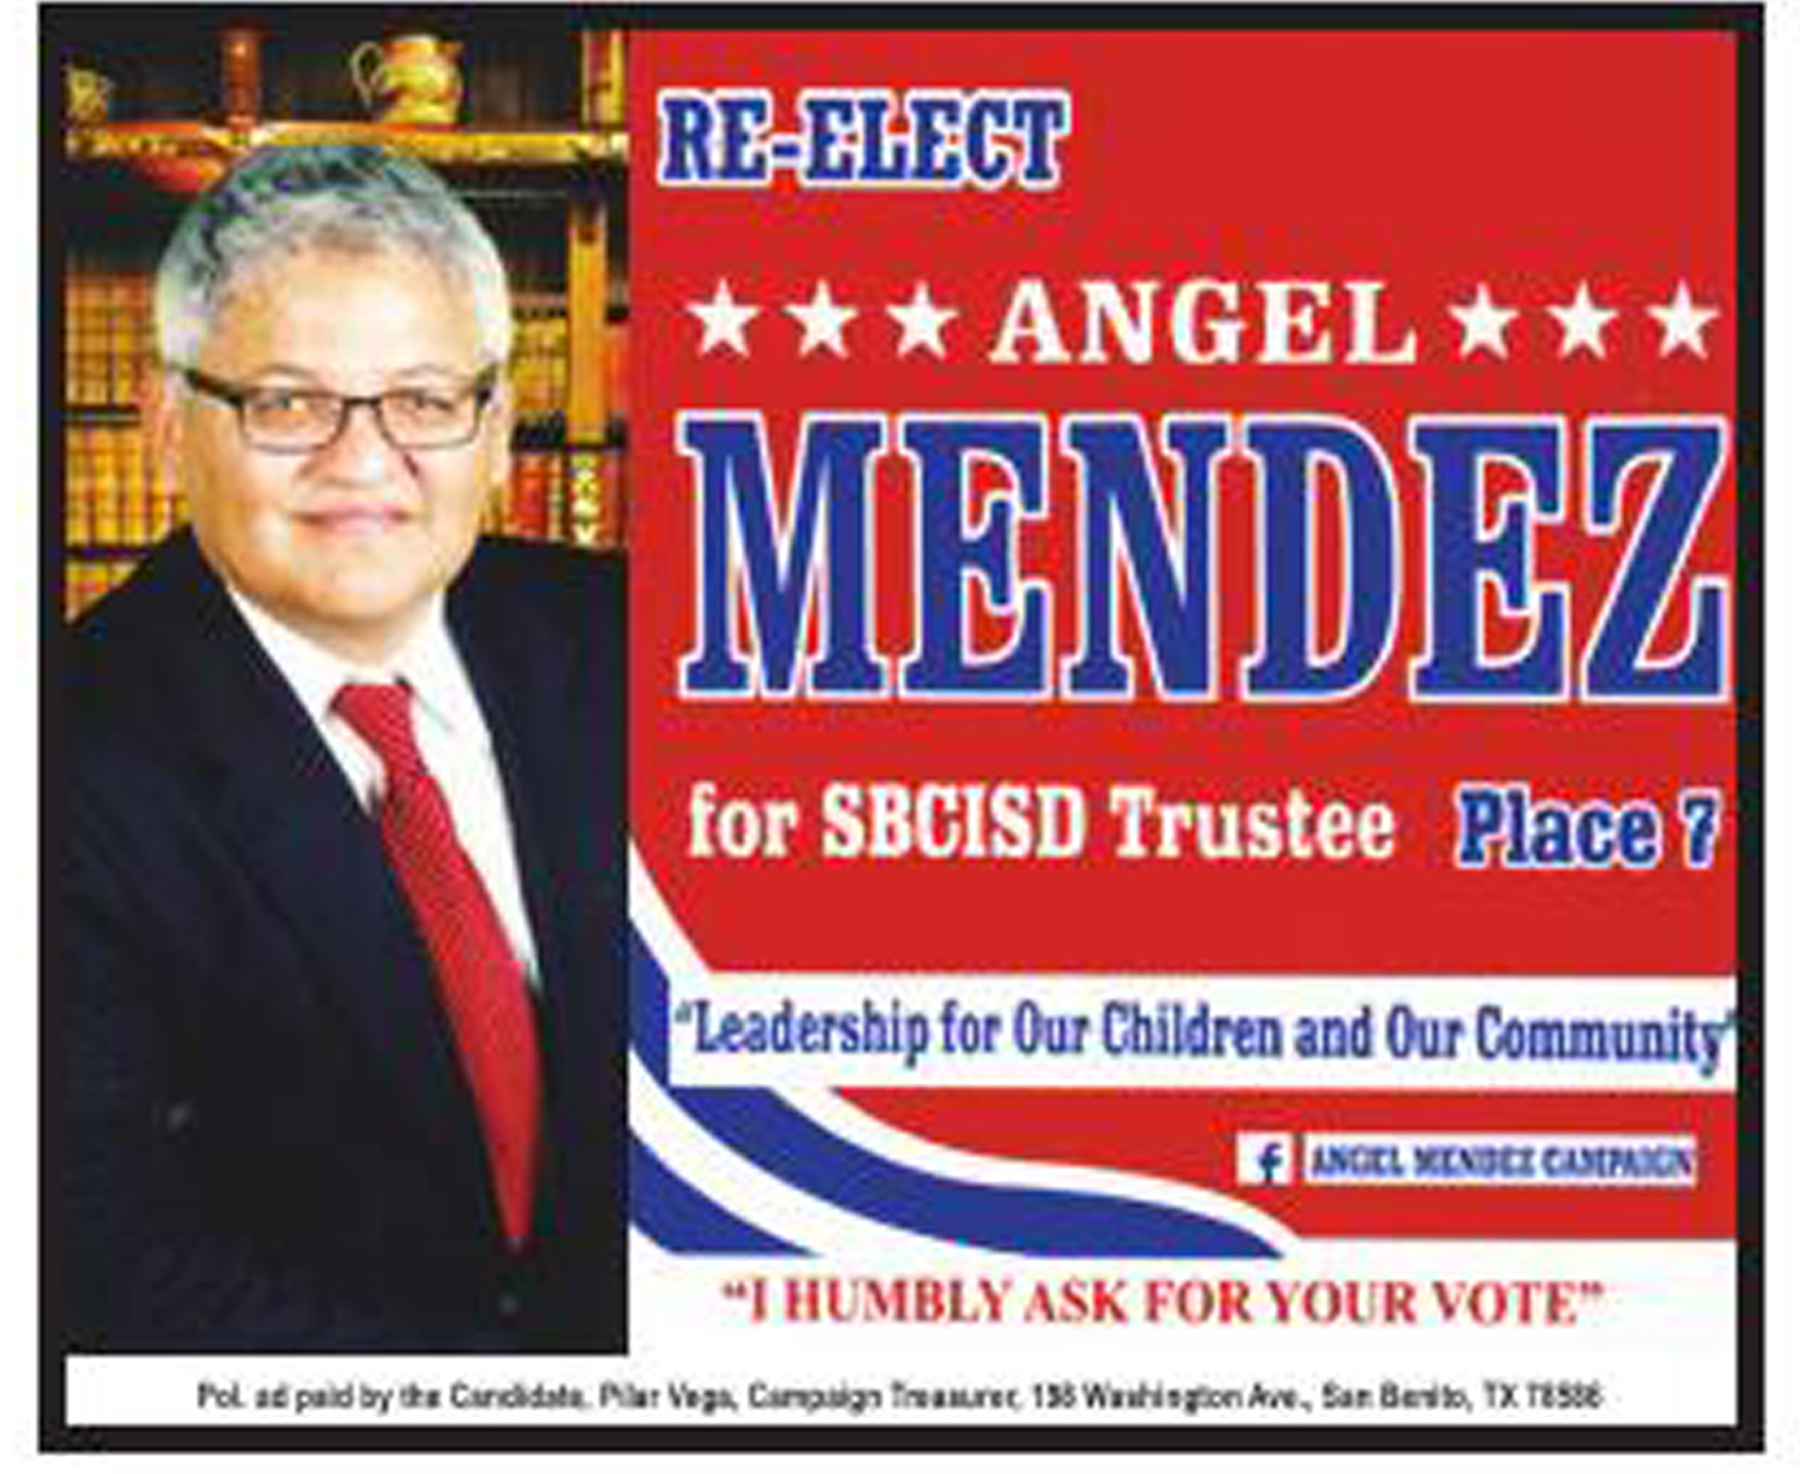 Re-Elect Angel Mendez